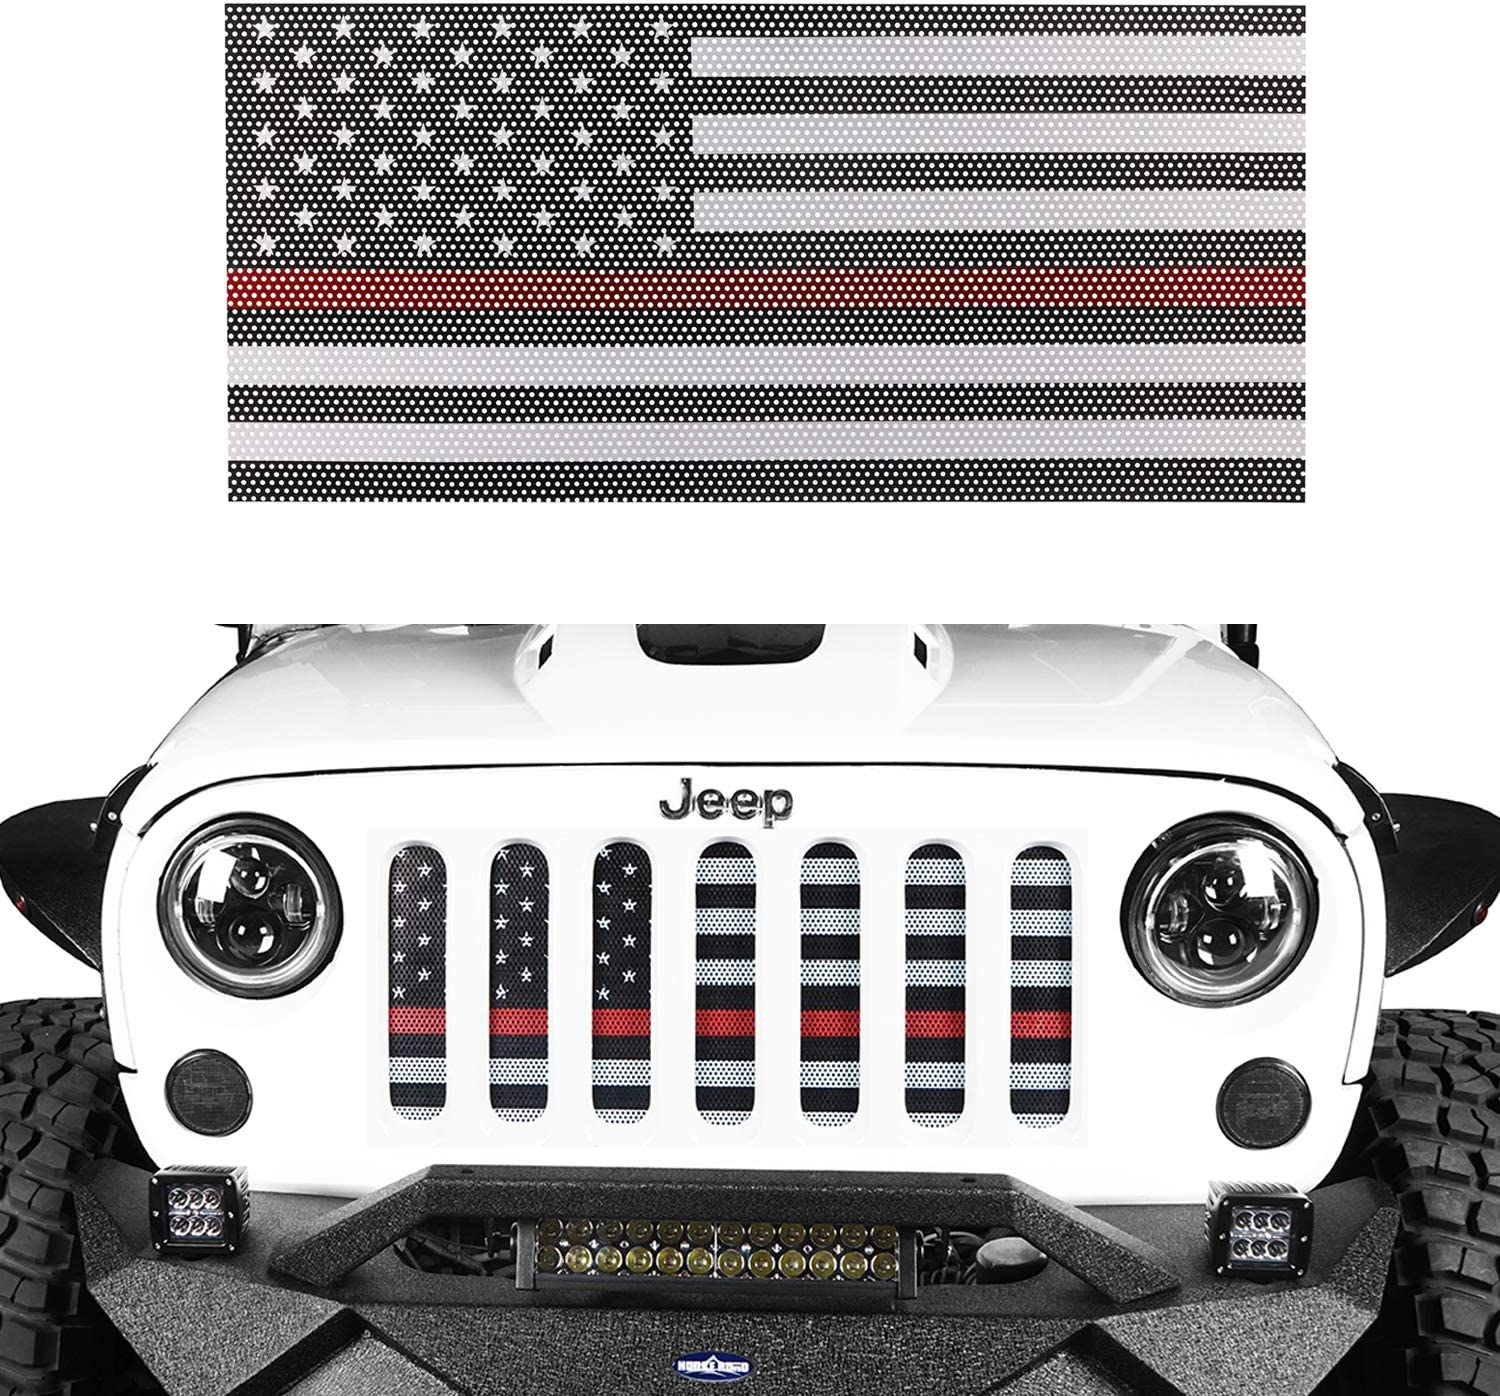 Hooke Road US Flag Front Grille Insert Deflector Guard for 2007-2018 Jeep Wrangler JK & Unlimited - Thin Red